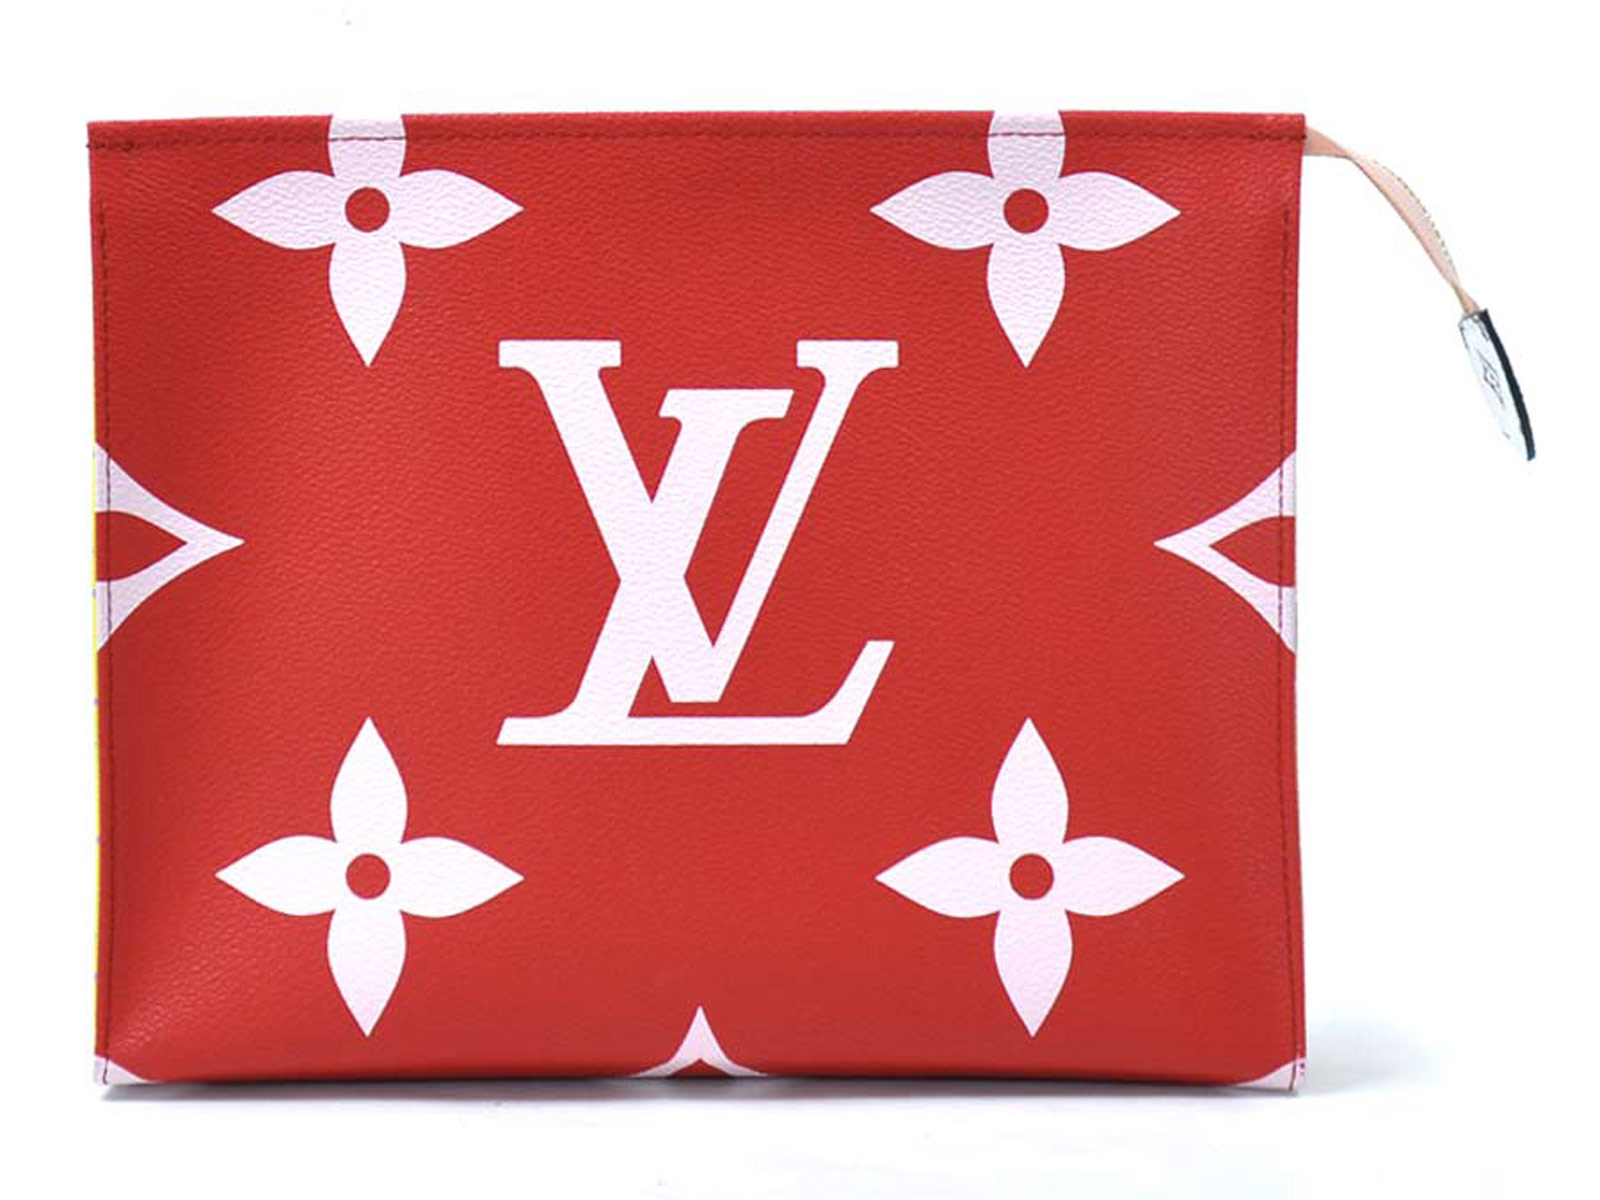 Auth-Louis-Vuitton-Monogram-Giant-Pochette-Toilette-Clutch-Bag-Rouge-Pink-96998 thumbnail 3